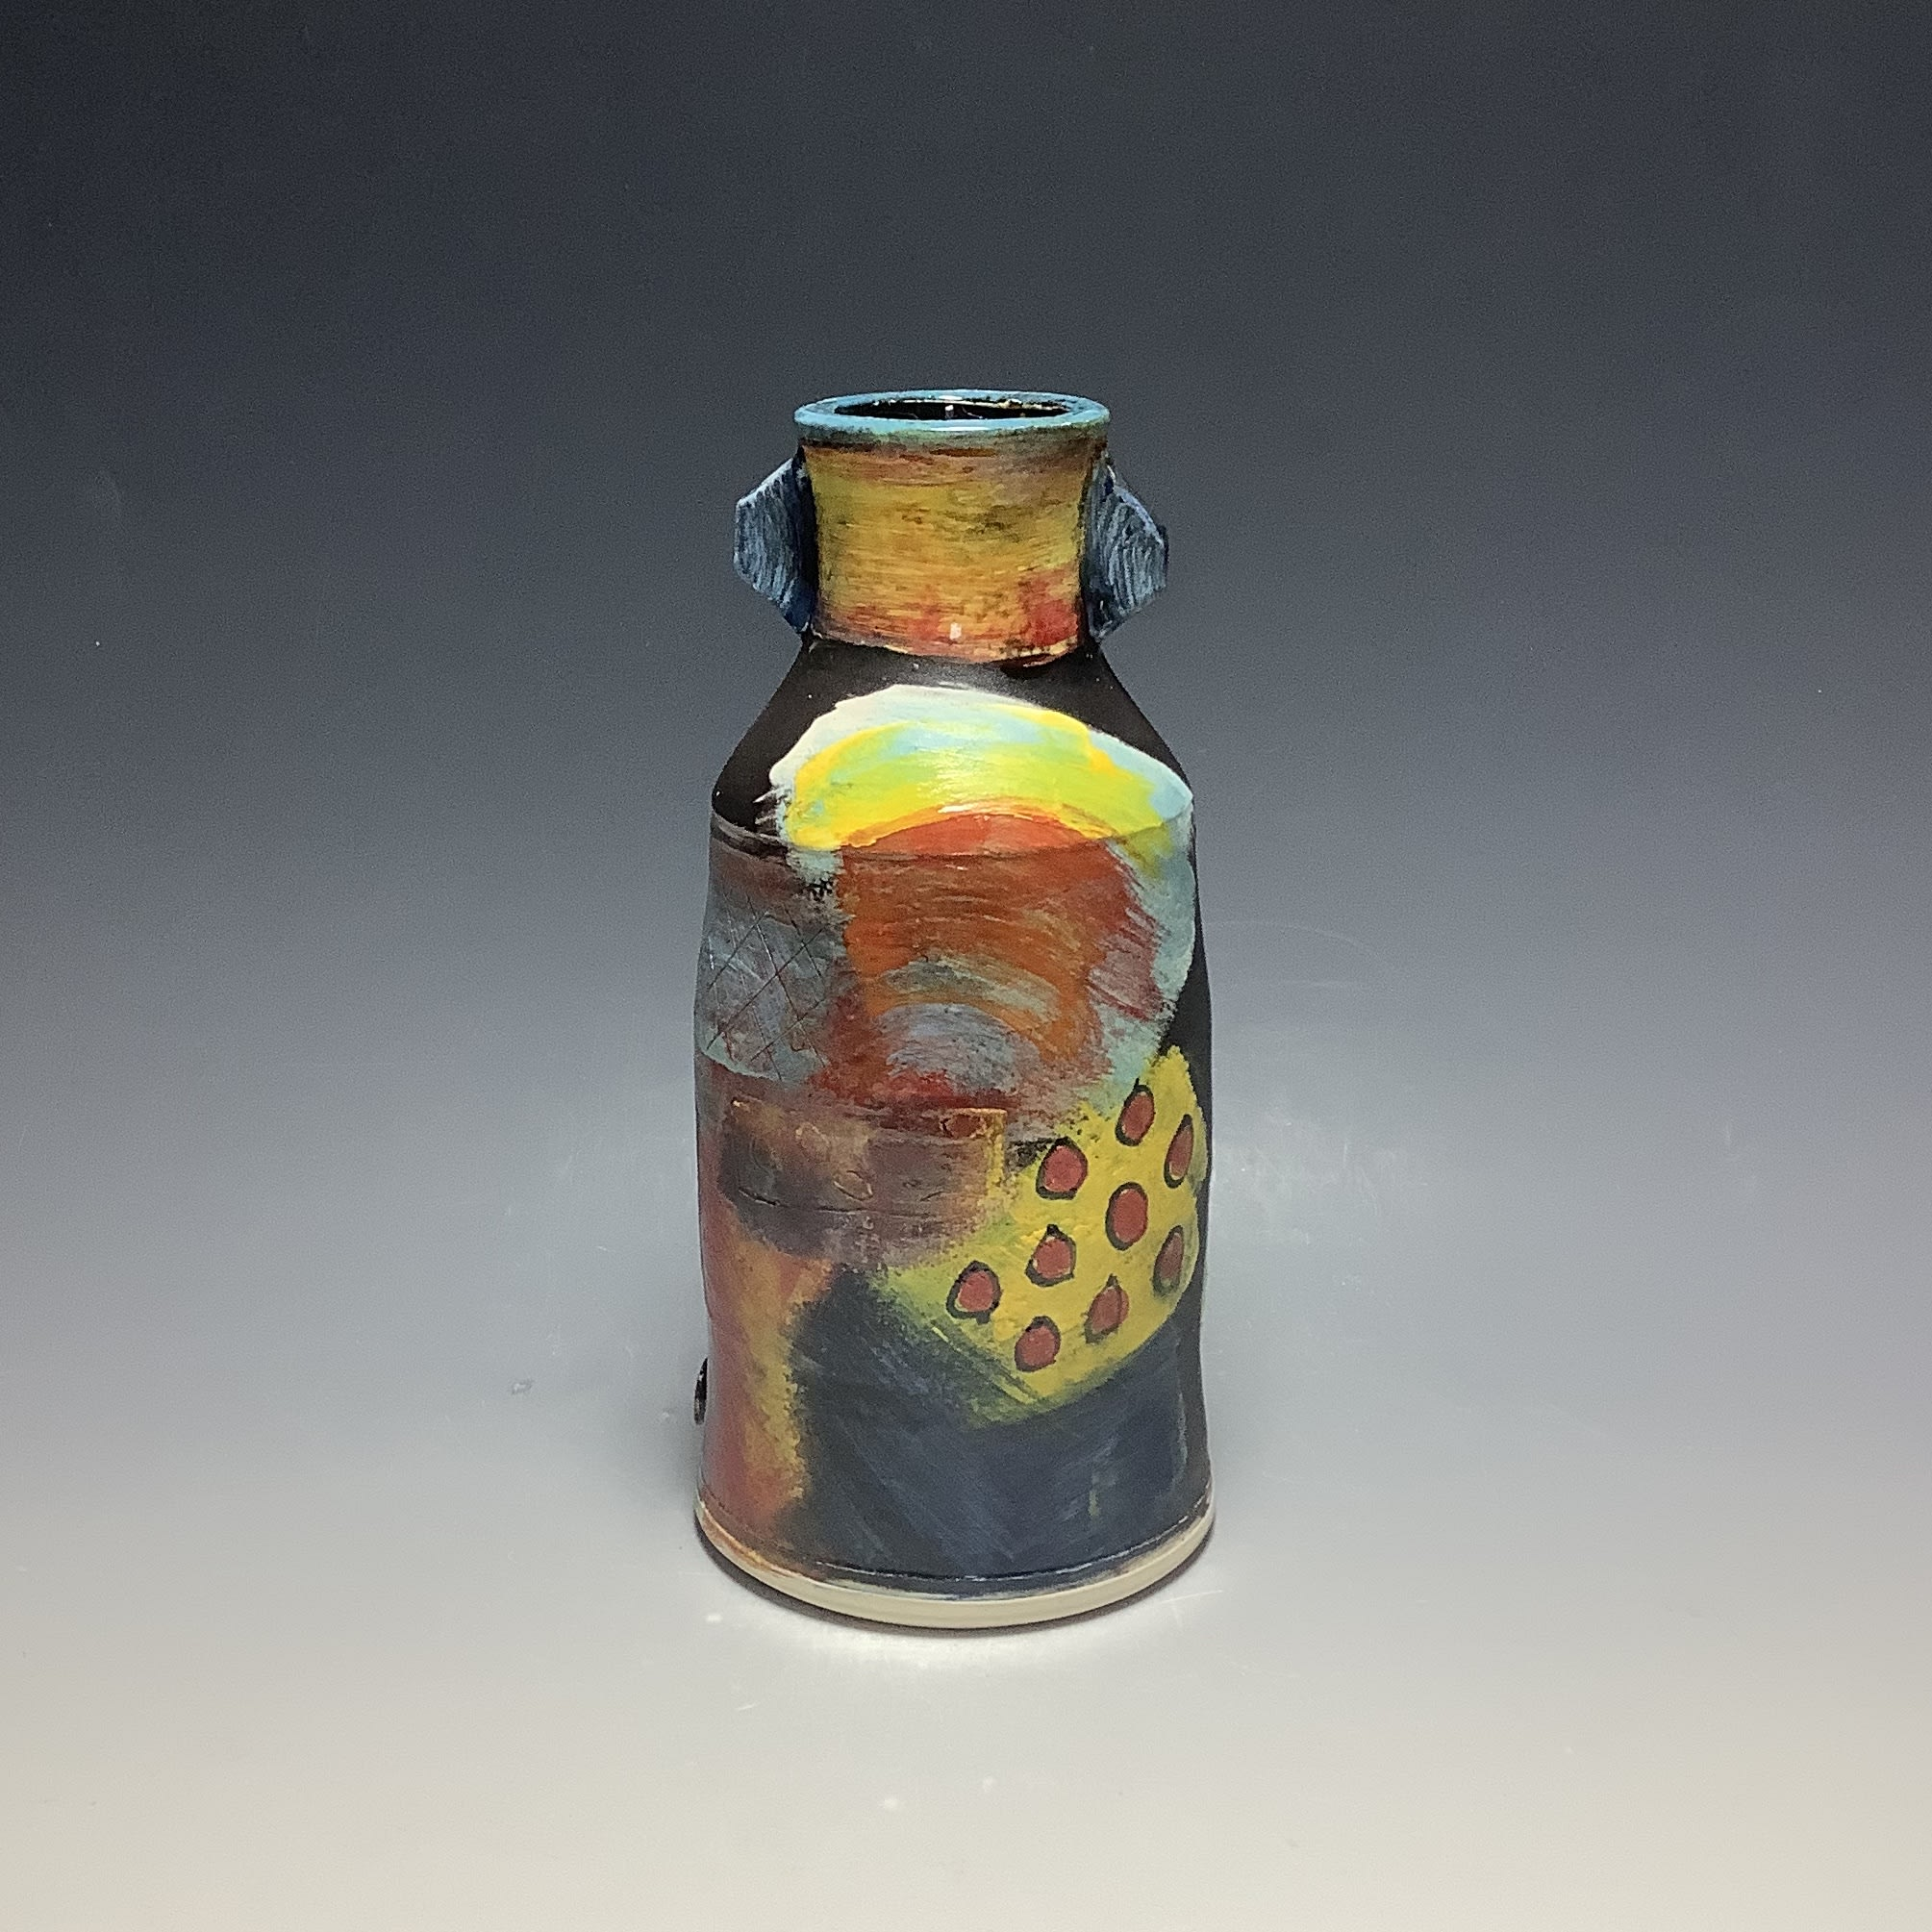 """<span class=""""link fancybox-details-link""""><a href=""""/artists/100-john-pollex/works/6831-john-pollex-bottle-with-neck-attachment-2020/"""">View Detail Page</a></span><div class=""""artist""""><strong>John Pollex</strong></div> b. 1941 <div class=""""title""""><em>Bottle with neck attachment</em>, 2020</div> <div class=""""signed_and_dated"""">impressed with the artist's seal mark 'JP'</div> <div class=""""medium"""">white earthenware decorated with coloured slips</div> <div class=""""dimensions"""">h. 8.5in</div><div class=""""price"""">£220.00</div><div class=""""copyright_line"""">Ownart: £22 x 19 Months, 0% APR</div>"""